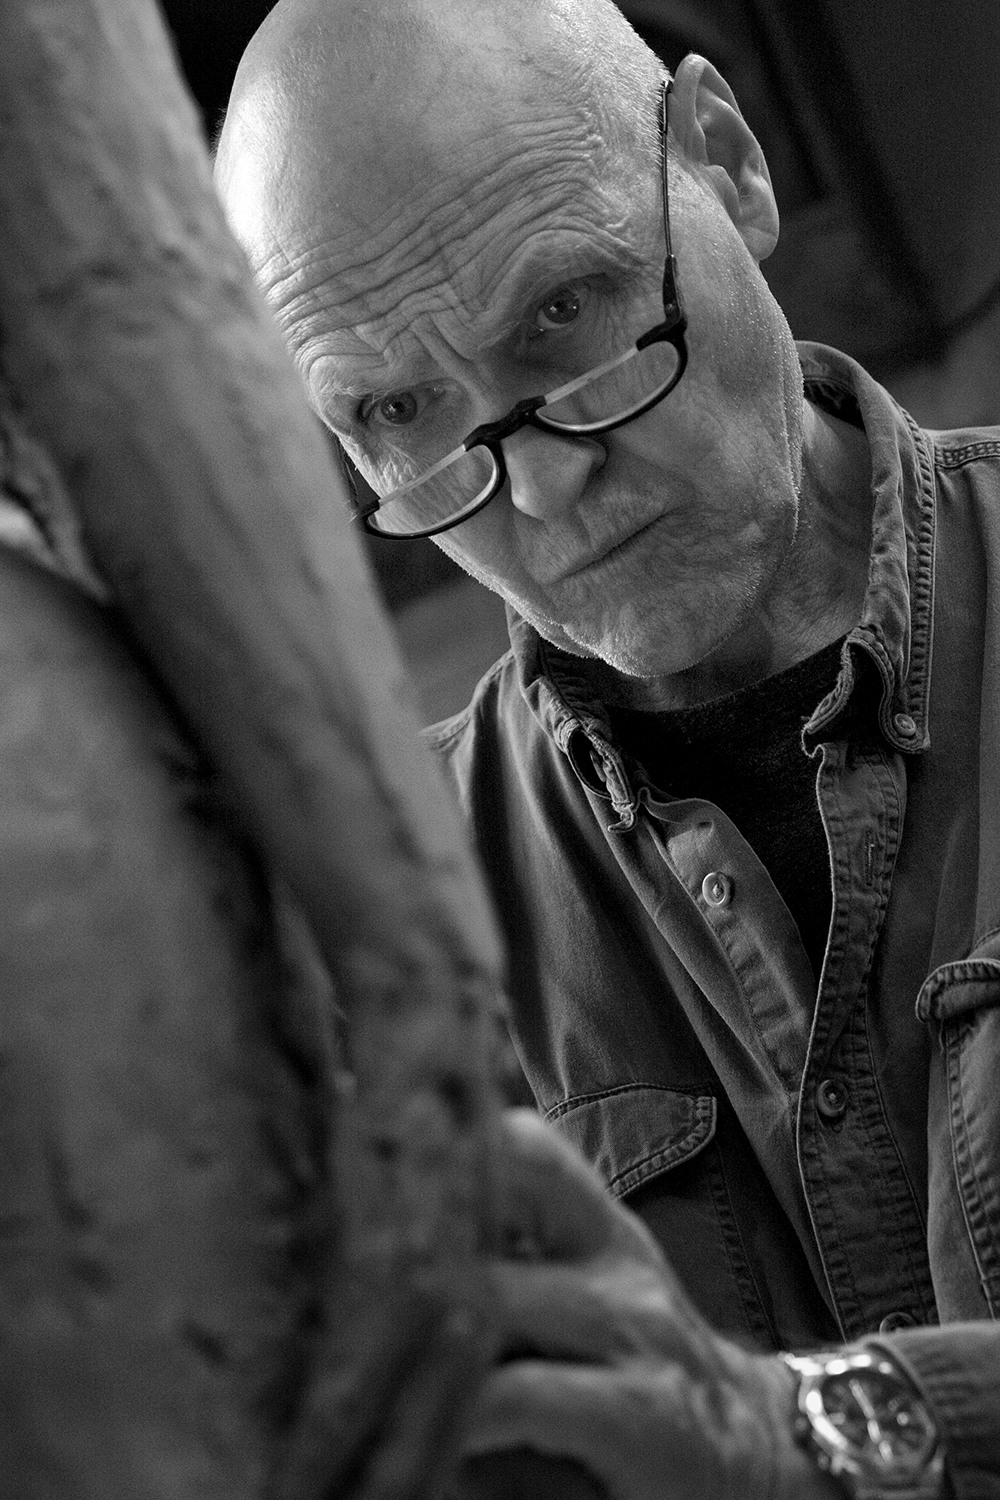 Solebury's George Anthonisen has been named the Honored Artist for the 92nd Phillips' Mill Juried Art Show, which will take place September 25 – October 31.  (Photo: Carla Klouda)